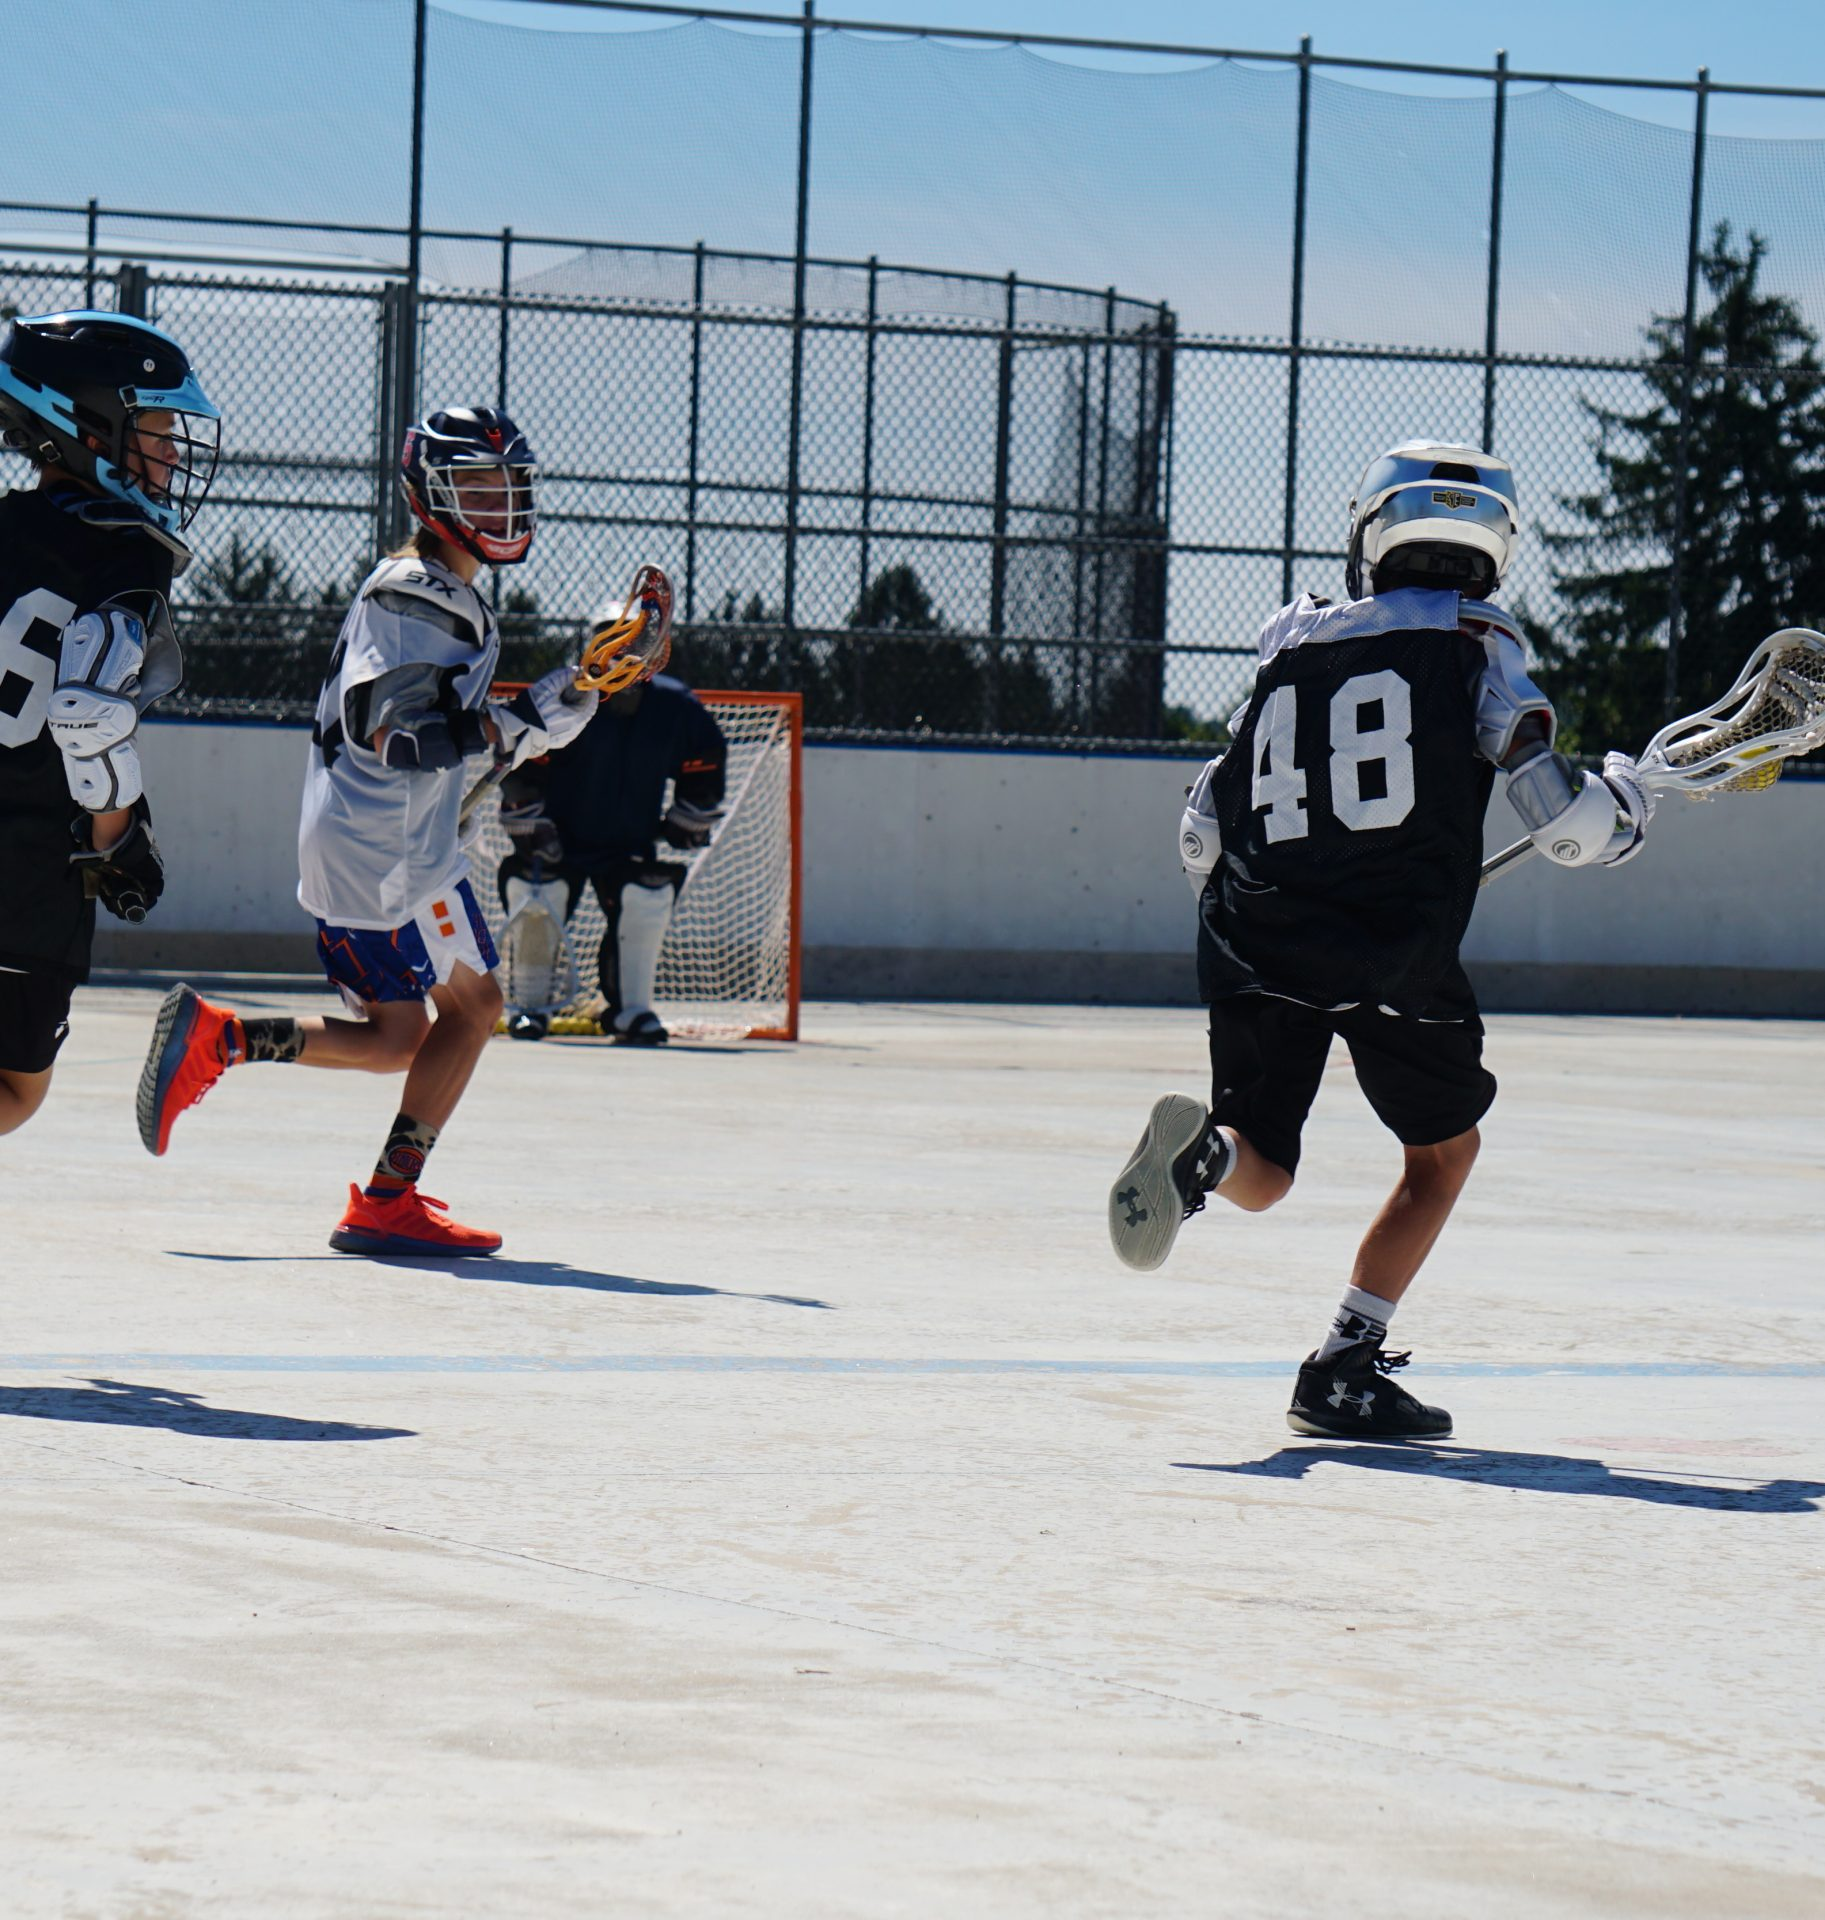 box lacrosse camp scrimmage action